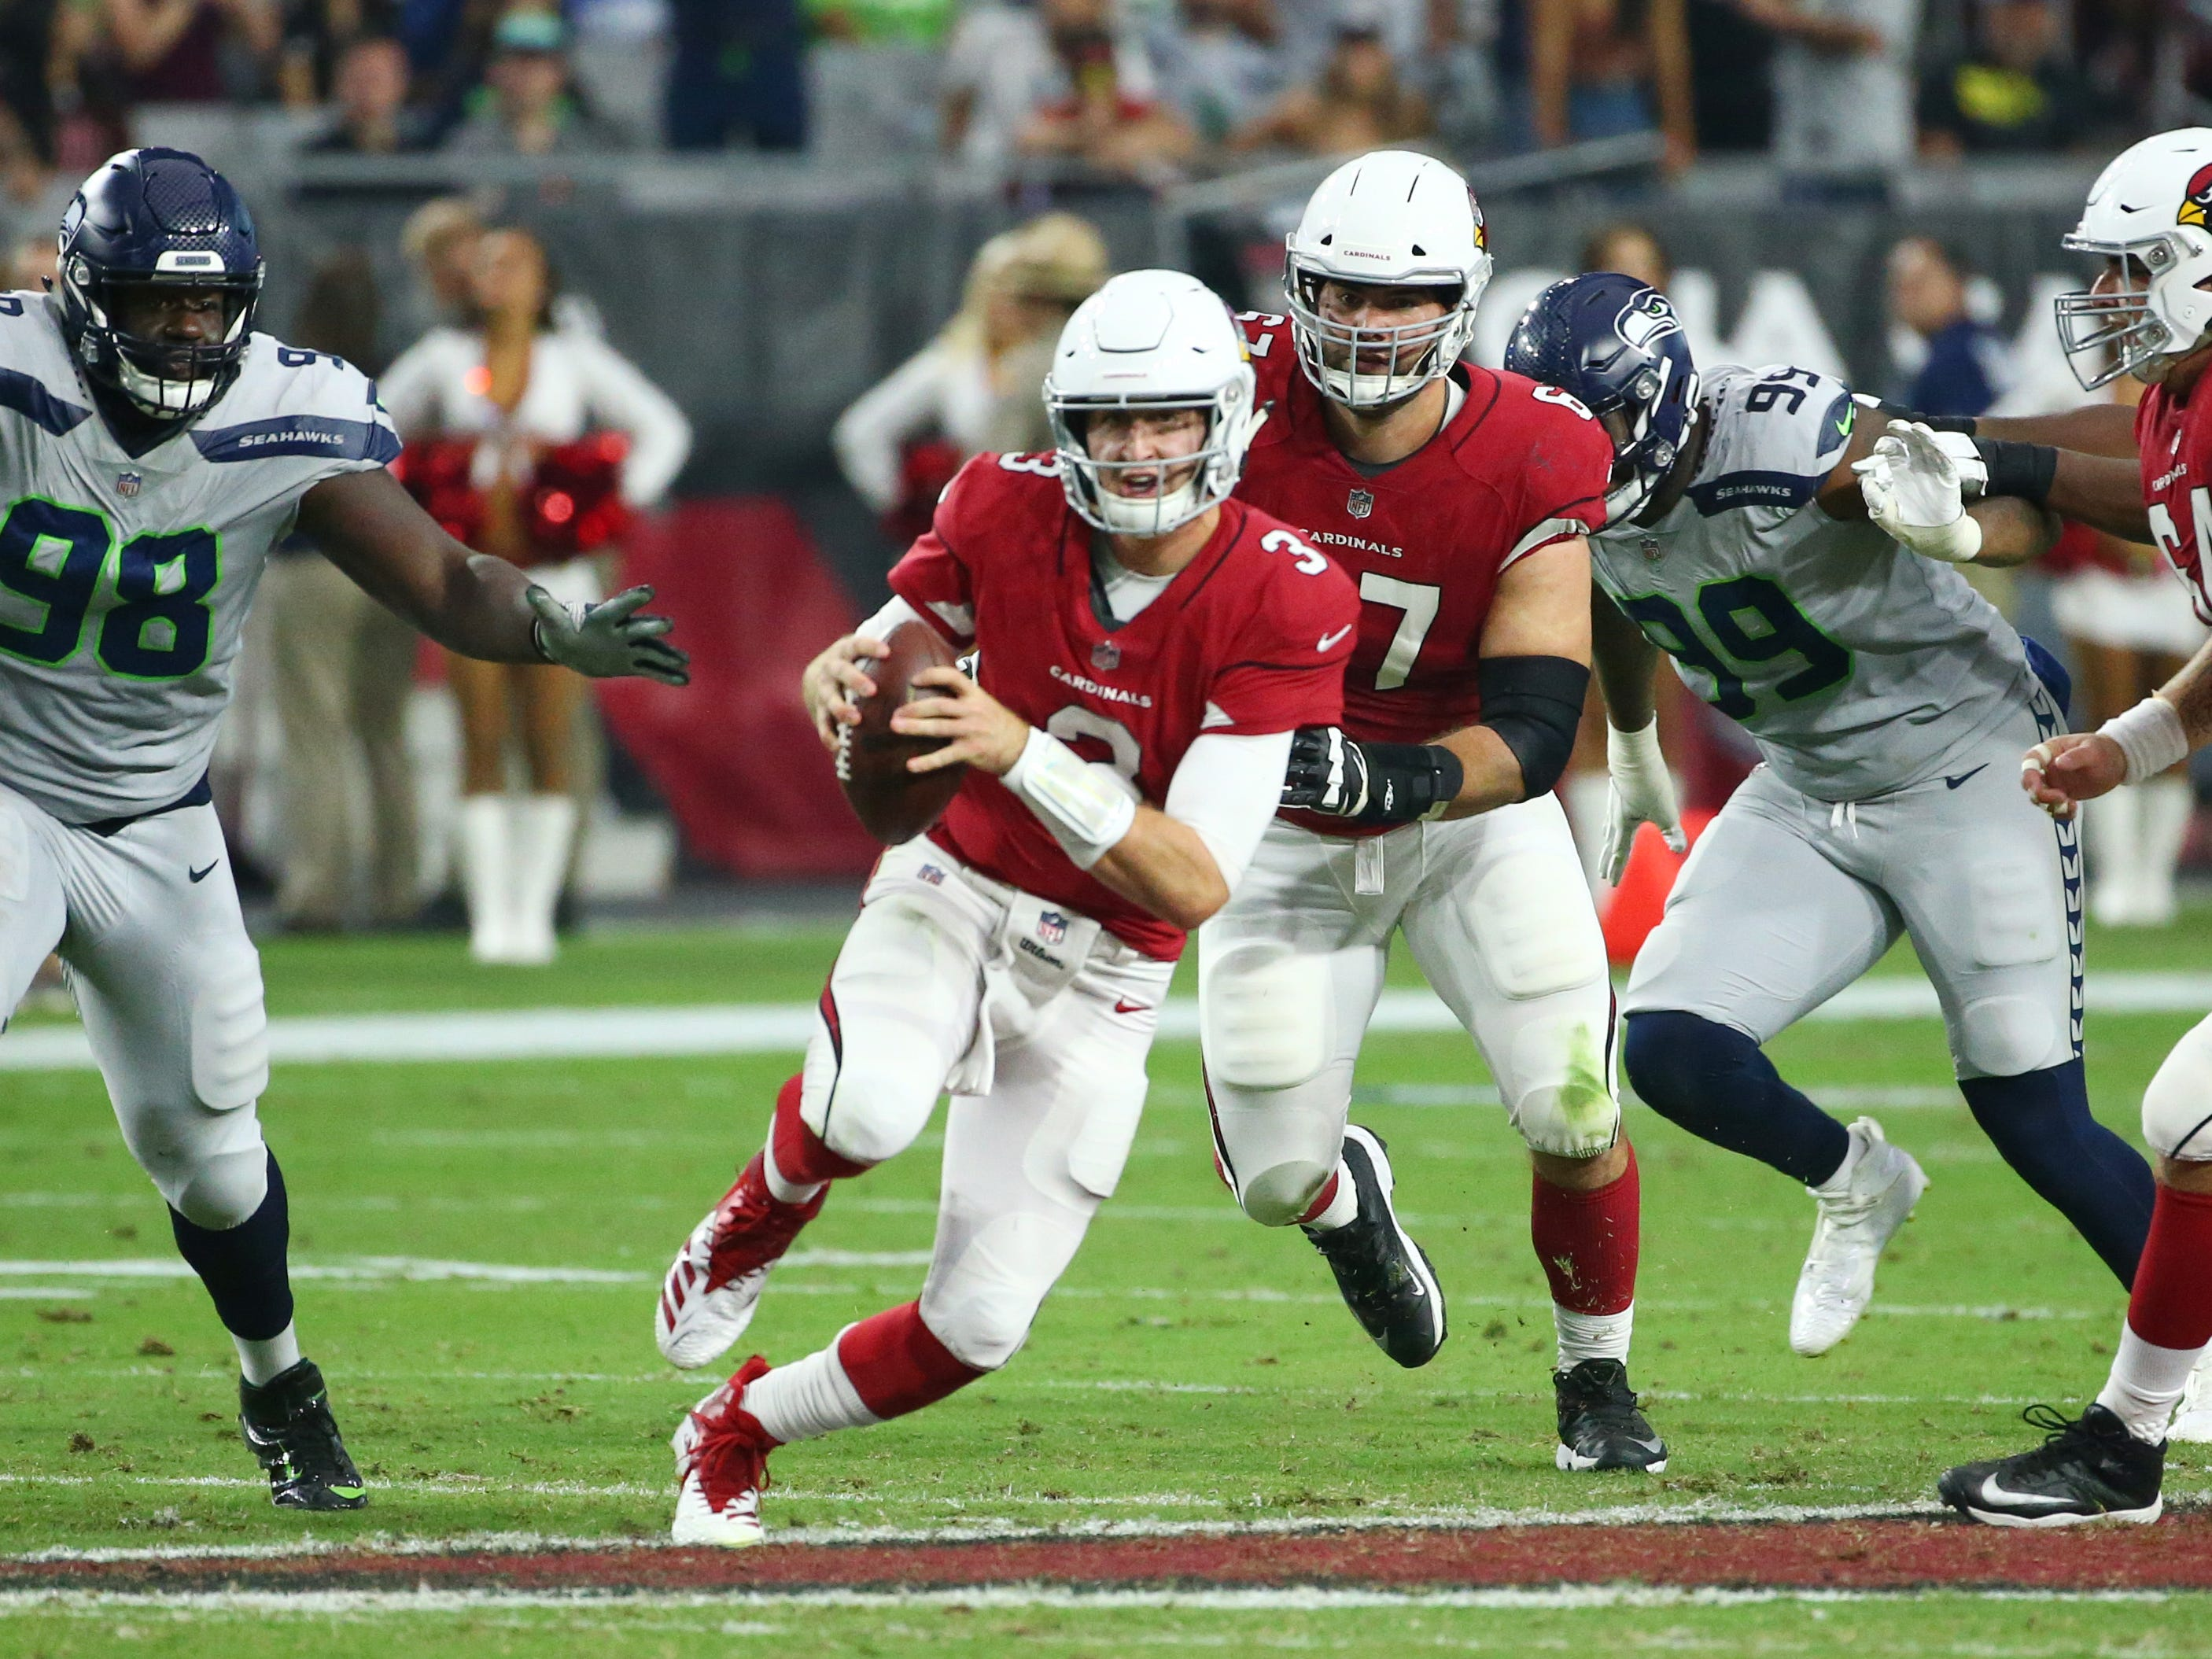 Arizona Cardinals quarterback Josh Rosin runs with the ball against the Seattle Seahawks in the first half at State Farm Stadium in Glendale, Ariz.